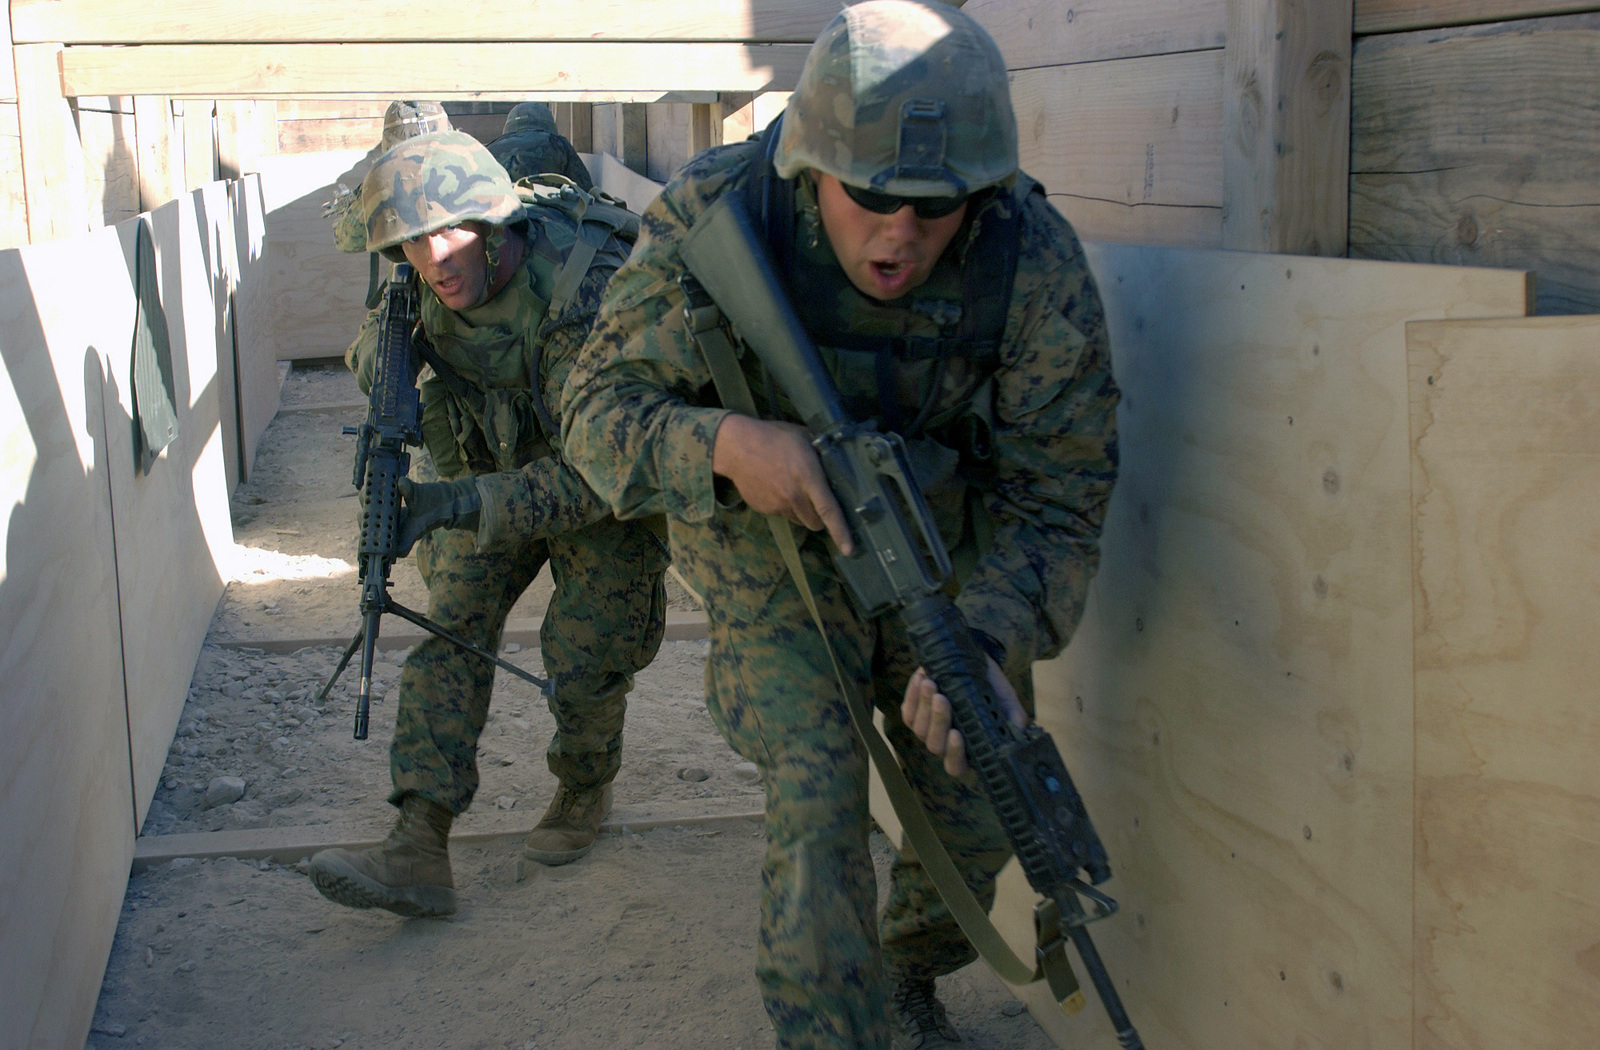 US Marine Corps (USMC) Marines attending the Infantry Officer's Training Course, armed with 5.56mm M16A2 rifles and a M249 Squad Automatic Weapons (SAW), move through a simulated enemy bunker position at the platoon based trench and grenade range 410A, located at the Marine Air Ground Combat Center, Twentynine Palms, California (CA)